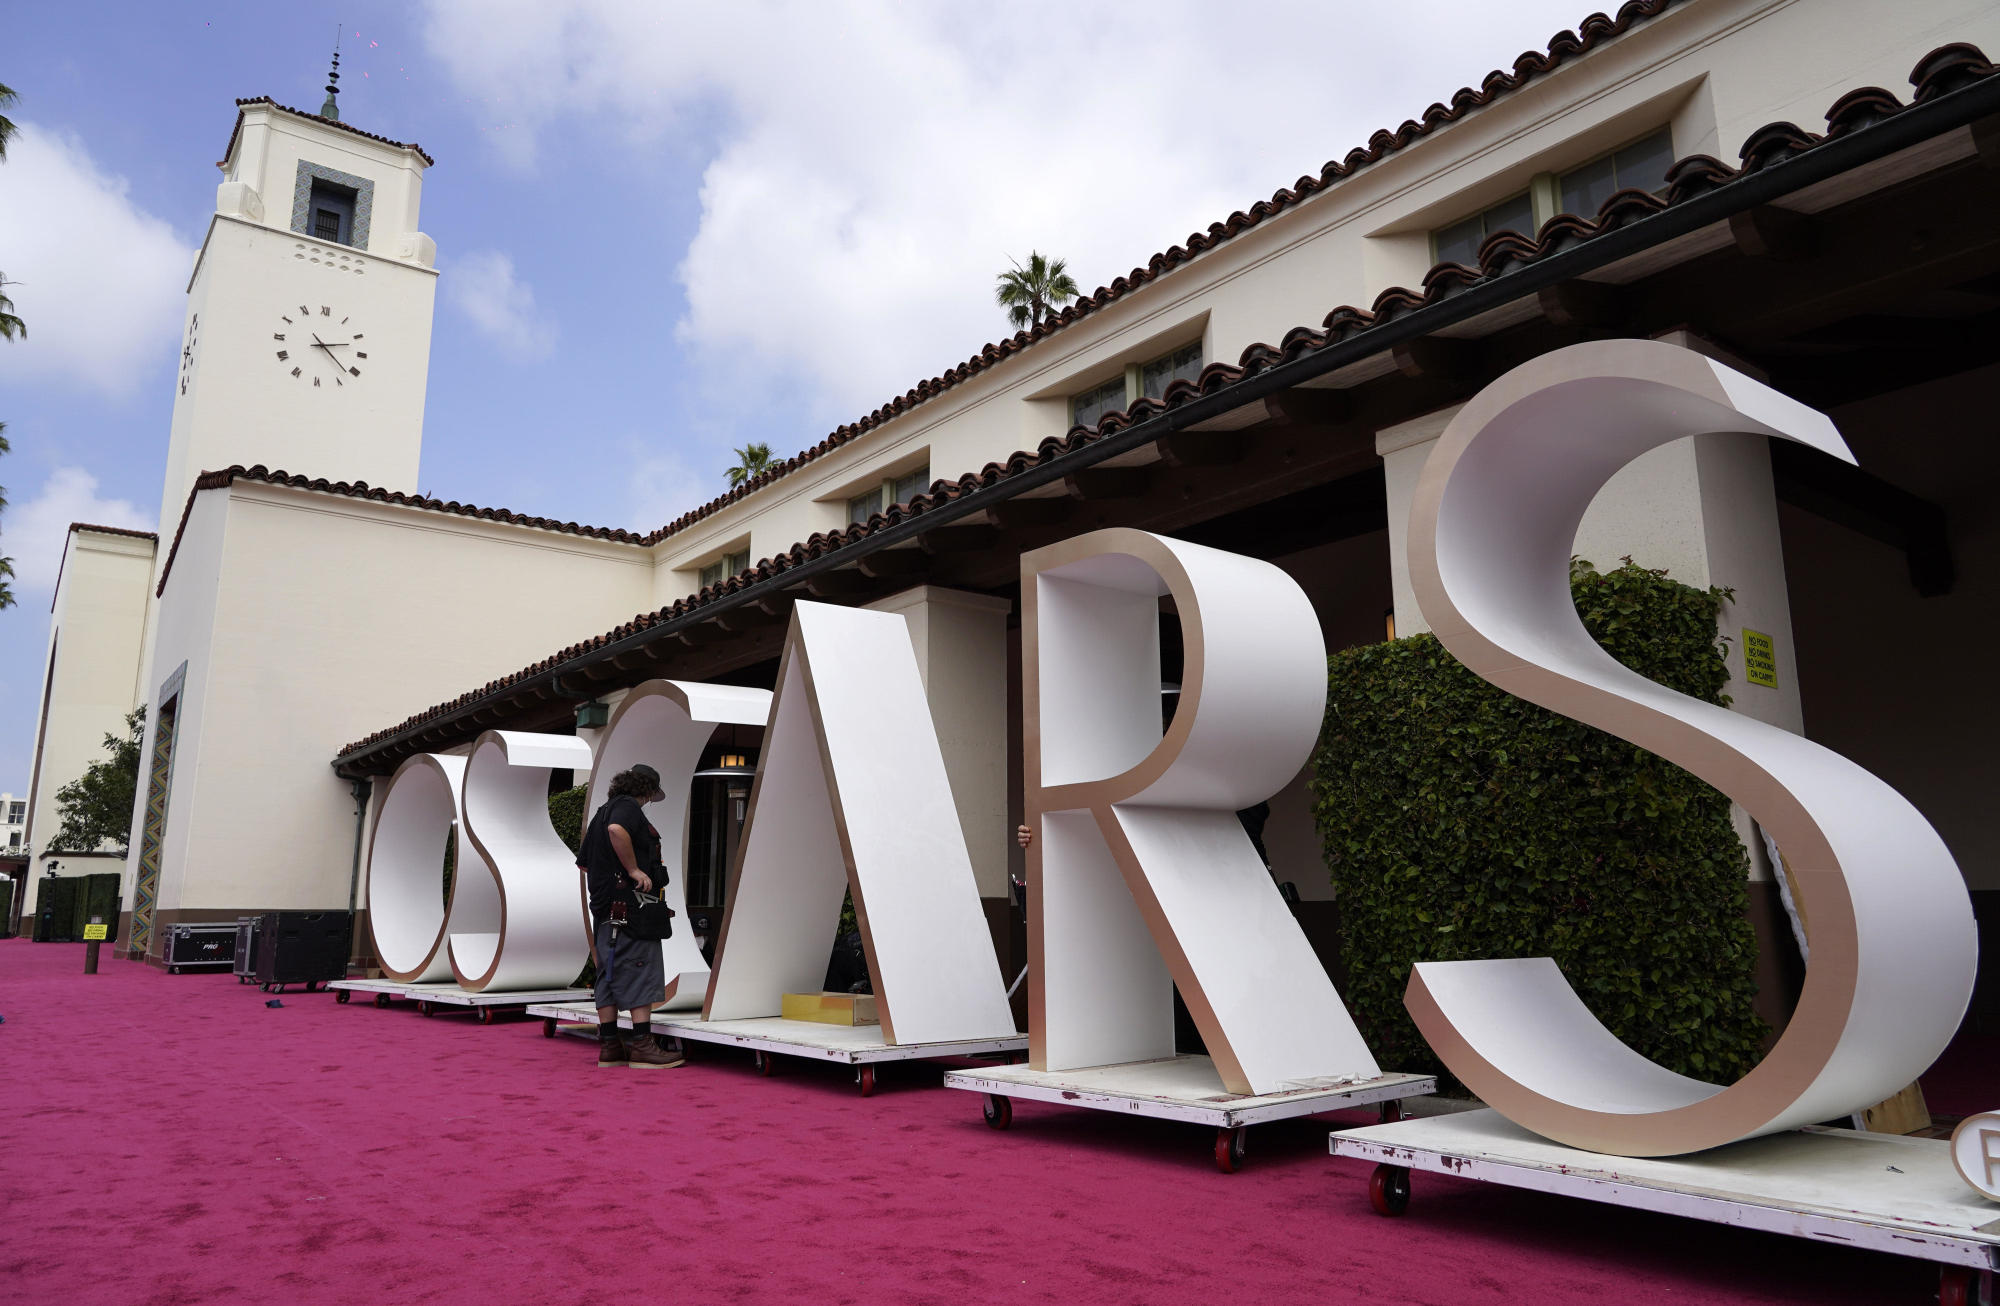 Oscars 2021: Full list of nominees and winners